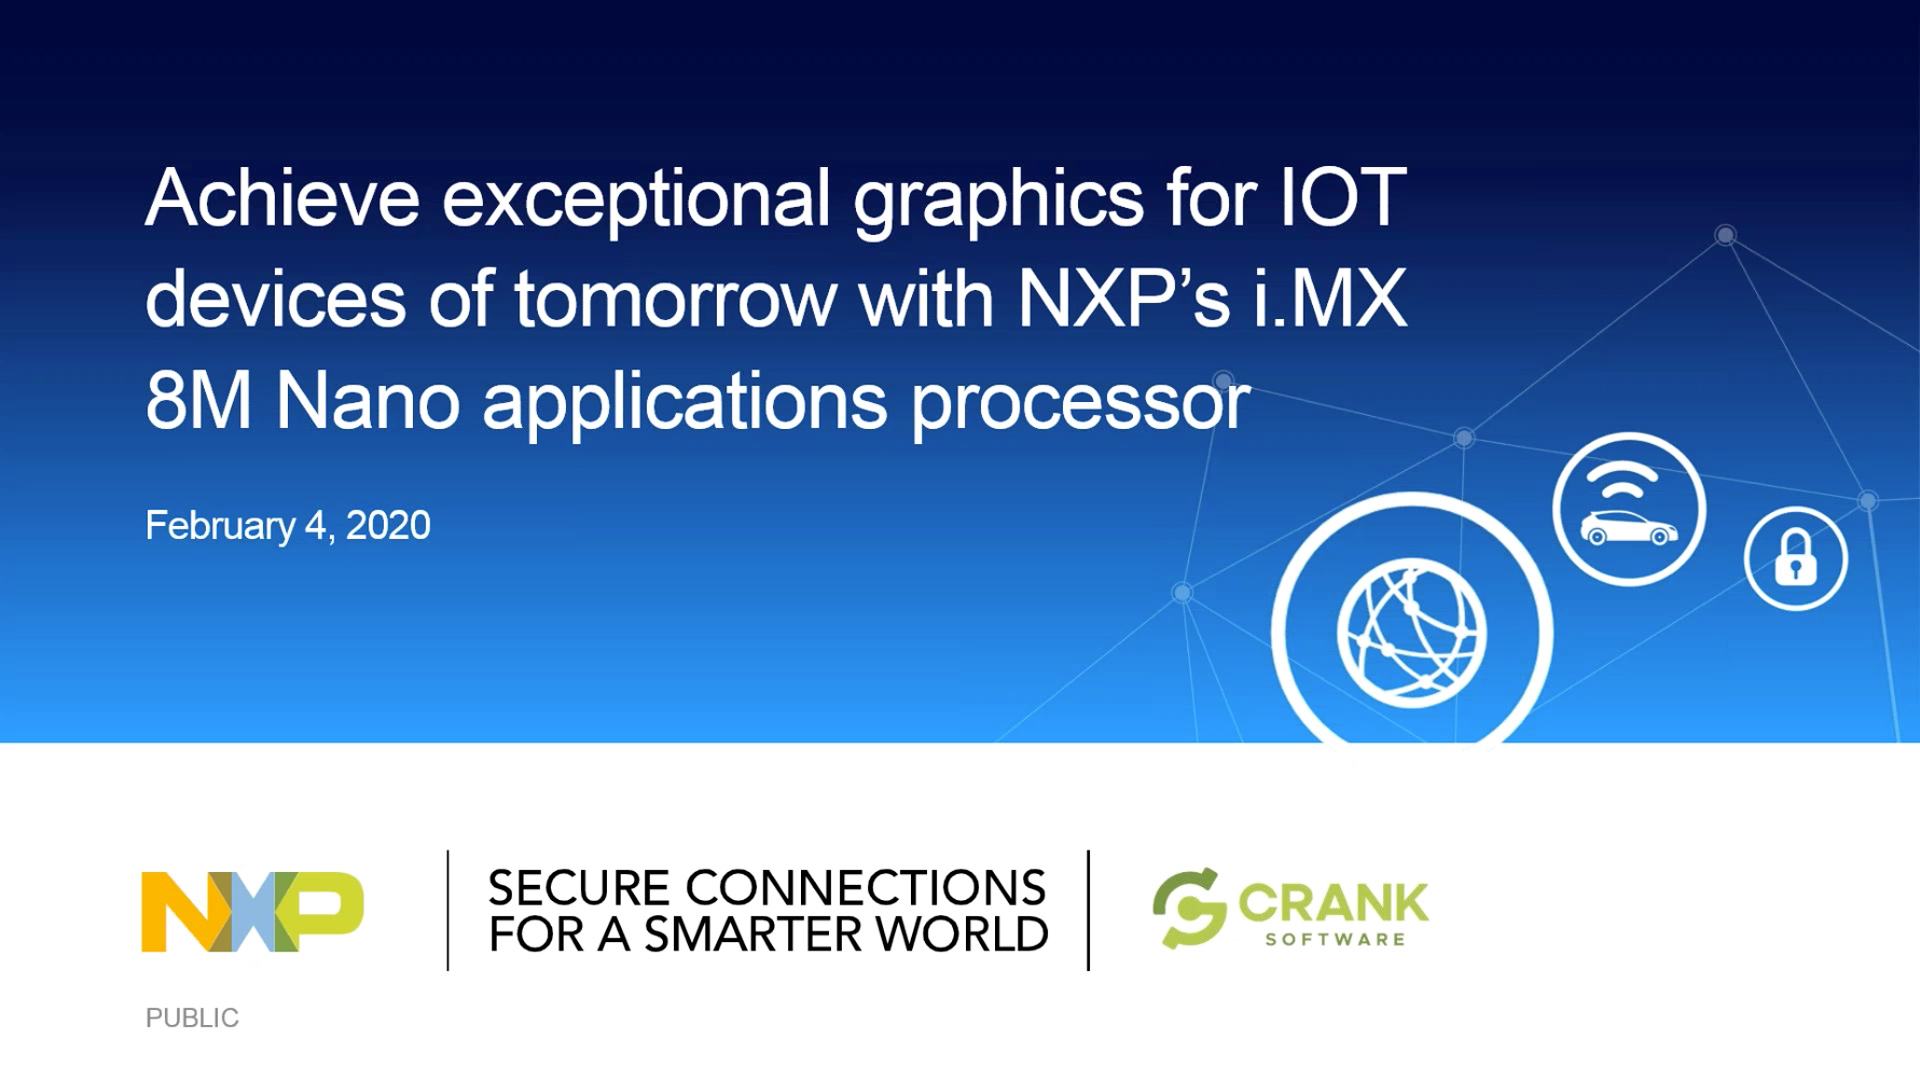 Achieve exceptional graphics for IOT devices of tomorrow with NXP i.MX 8M Nano applications processo